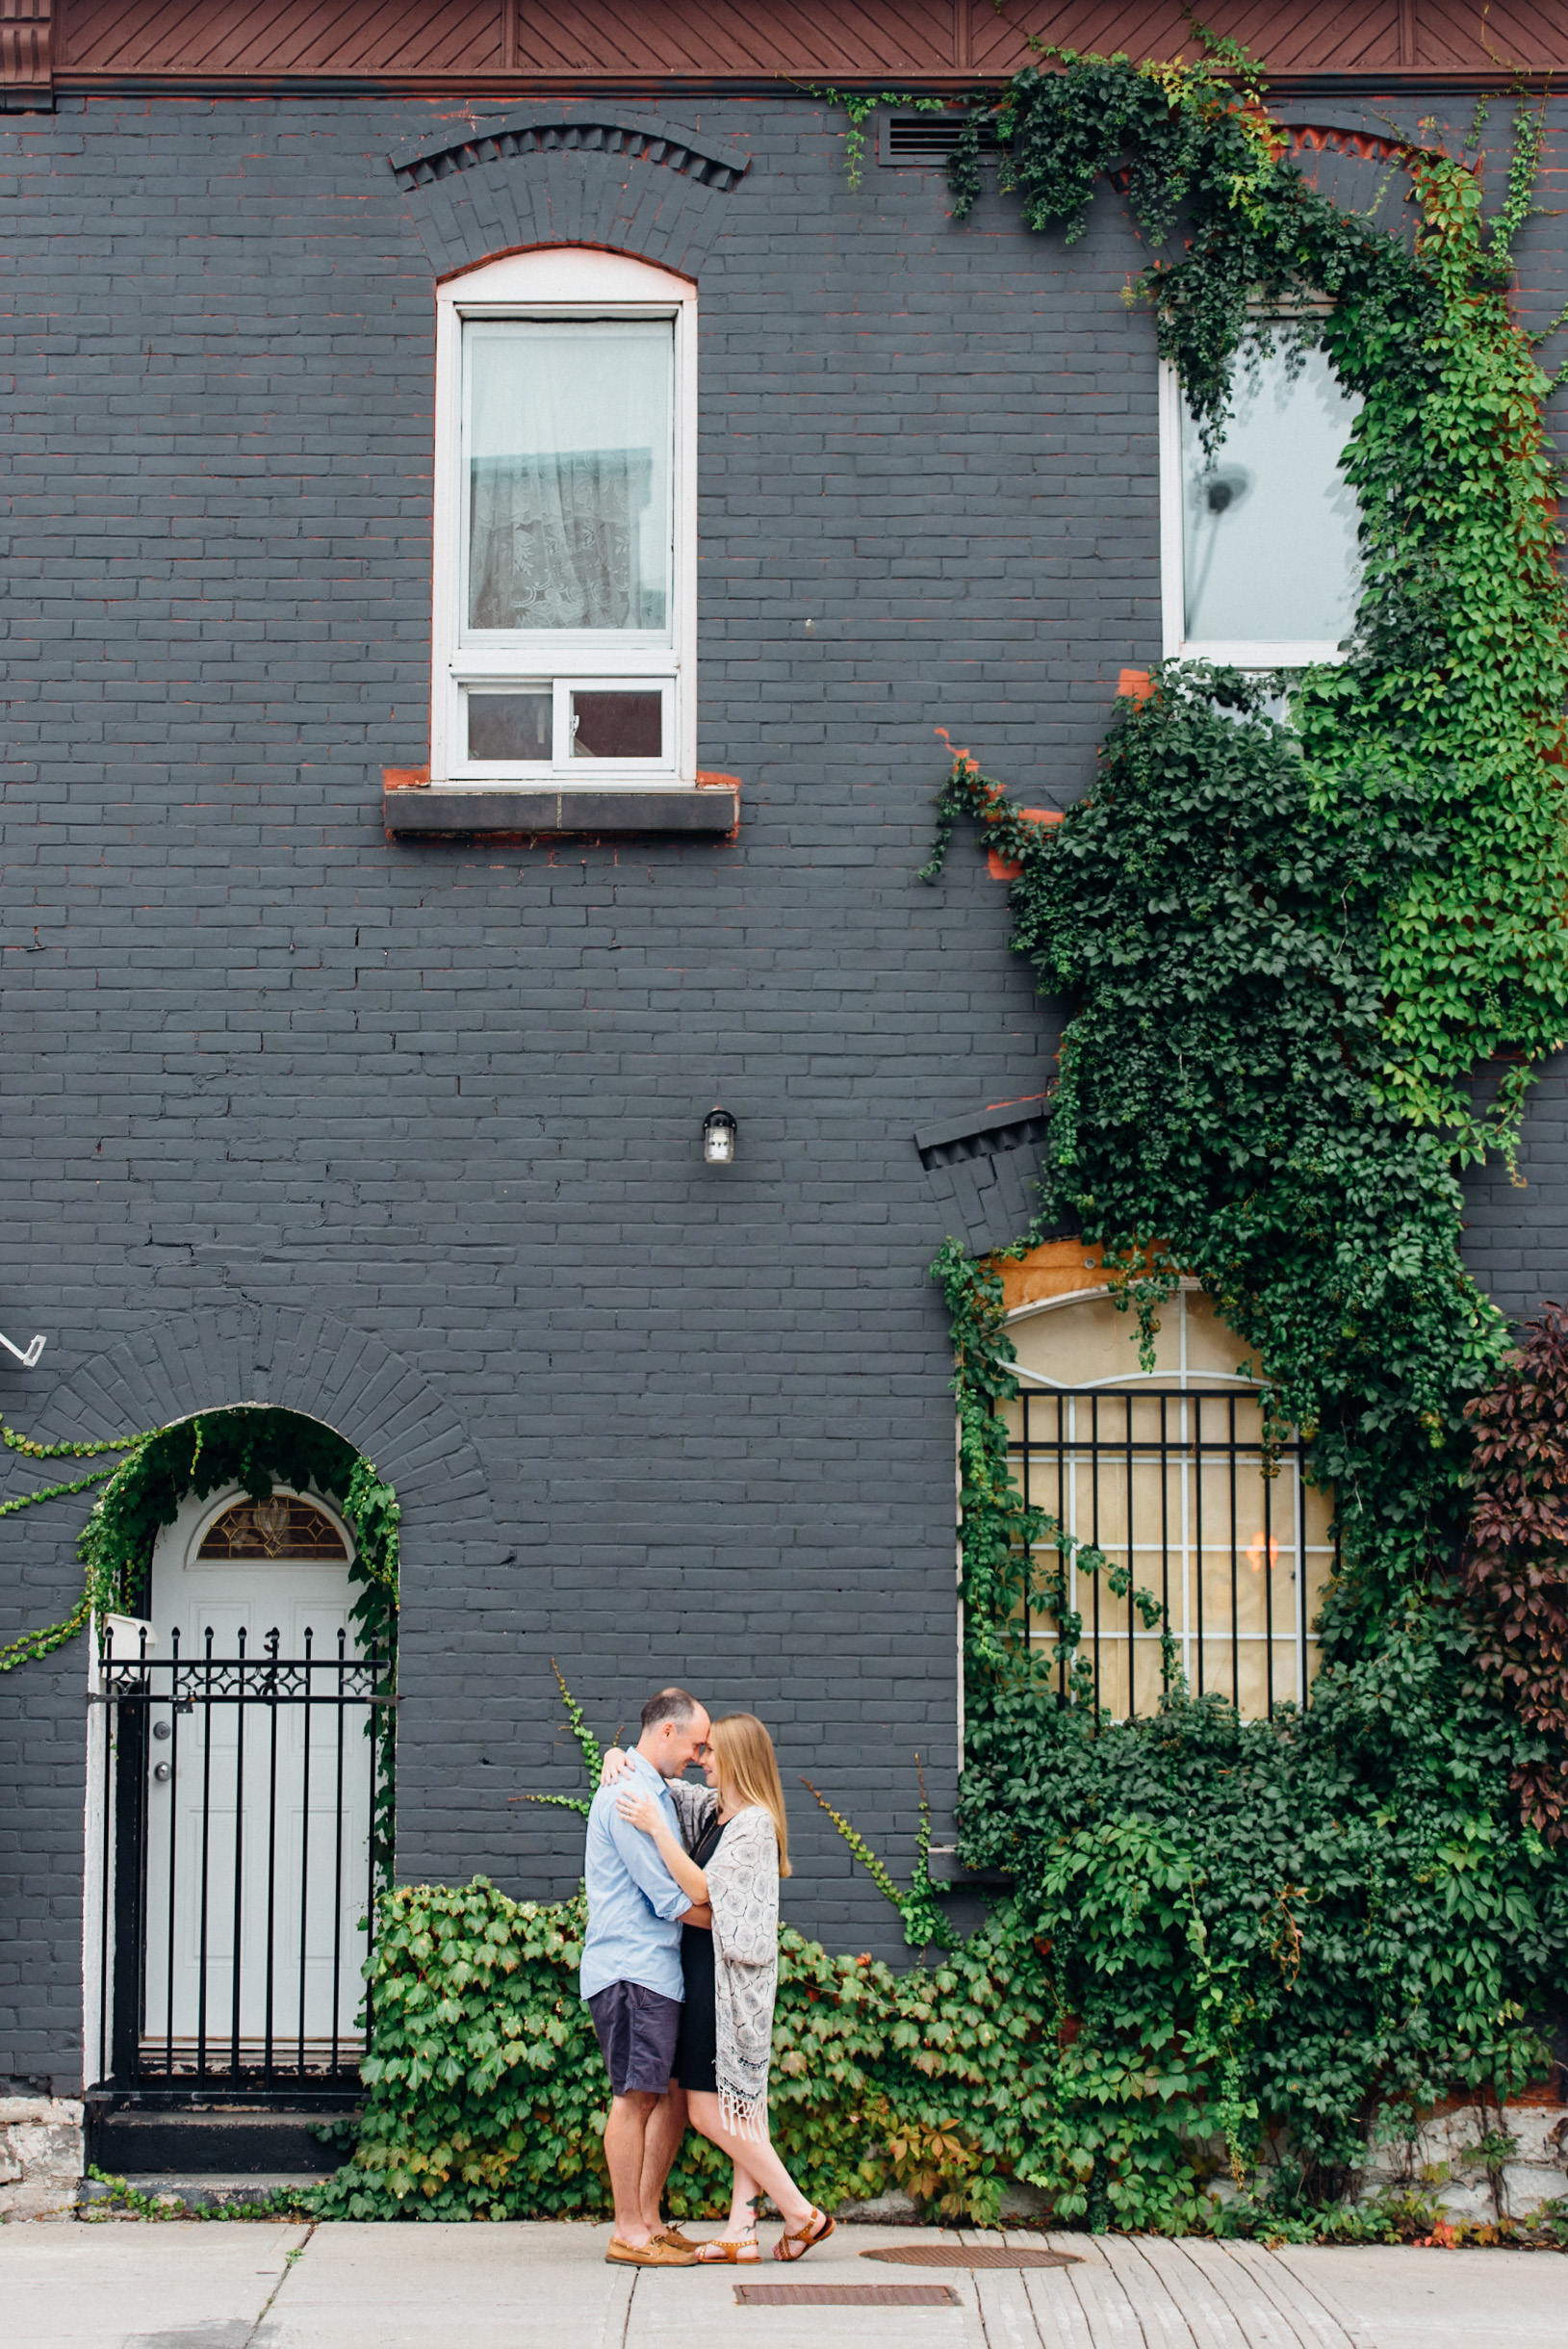 Liz + Ryan Engagement | Ali & Batoul Photography-10.jpg